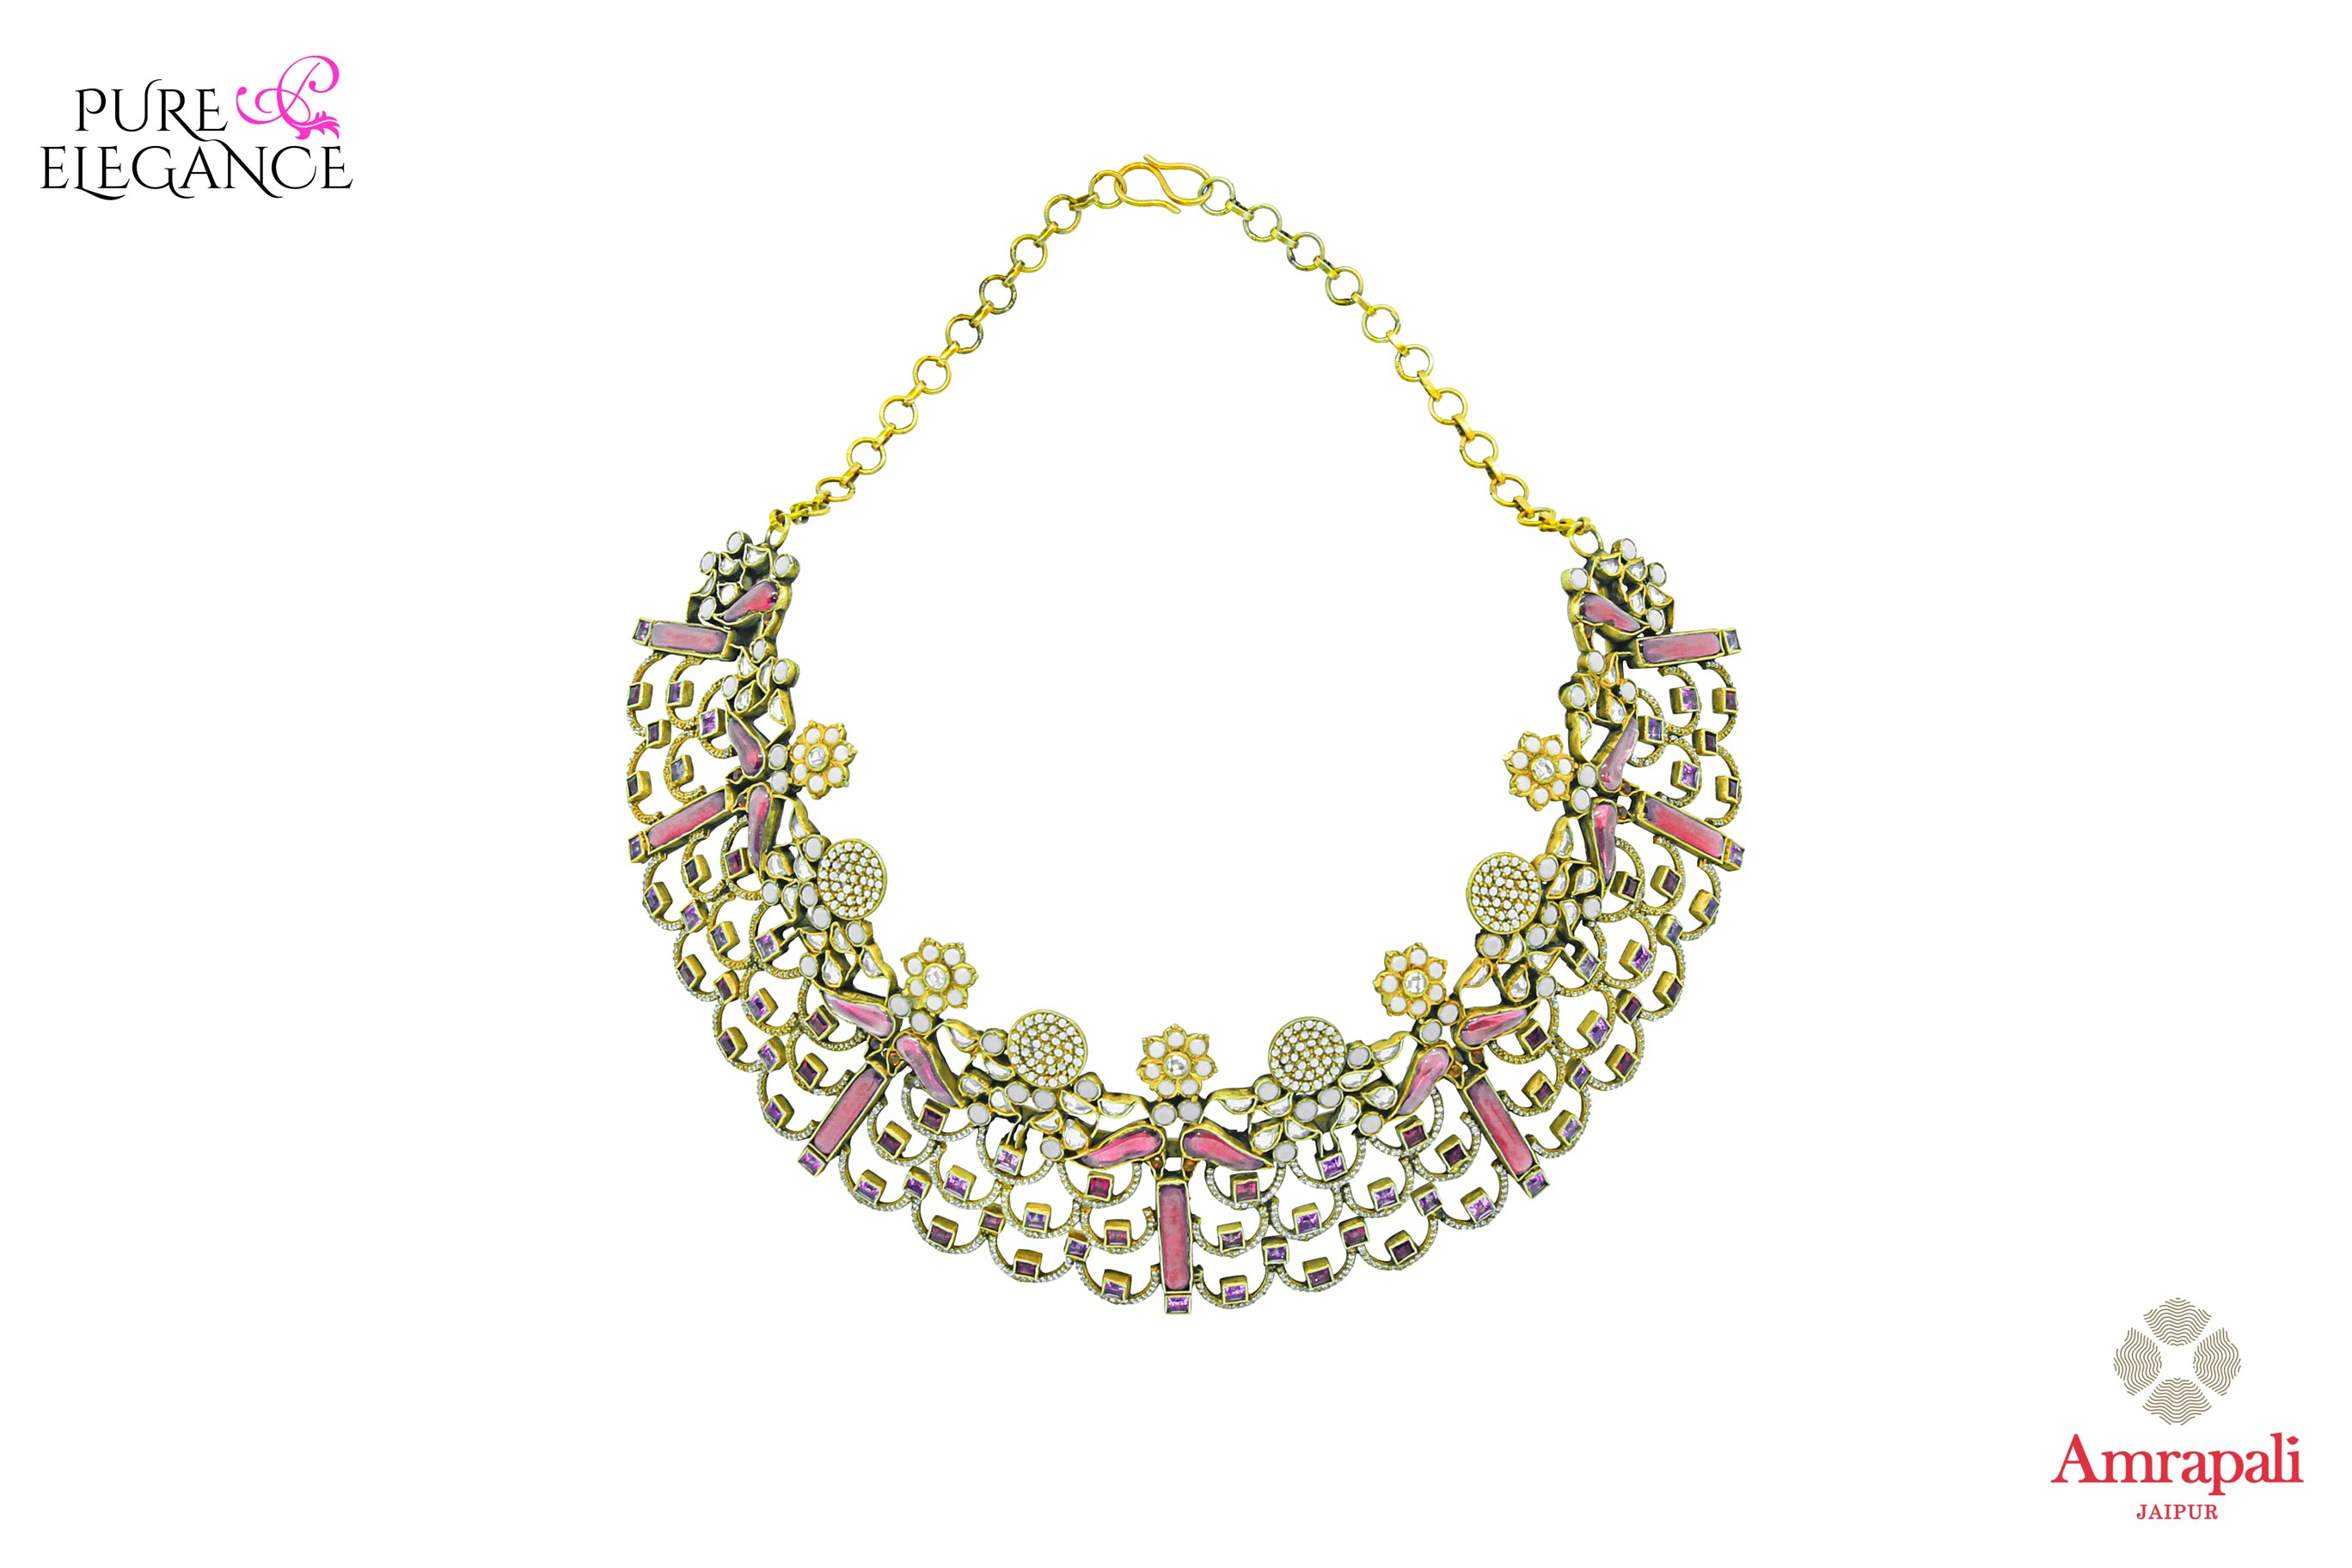 Buy Silver Gold Plated Filigree Glass Zircon Choker Necklace online in USA from Amrapali.  If you are looking for Indian silver jewelry in USA, then Pure Elegance Indian fashion store is the place for you. A whole range of exquisite of ethnic Indian jewelry is waiting for you on our shelves, you can also opt to shop online.-full view